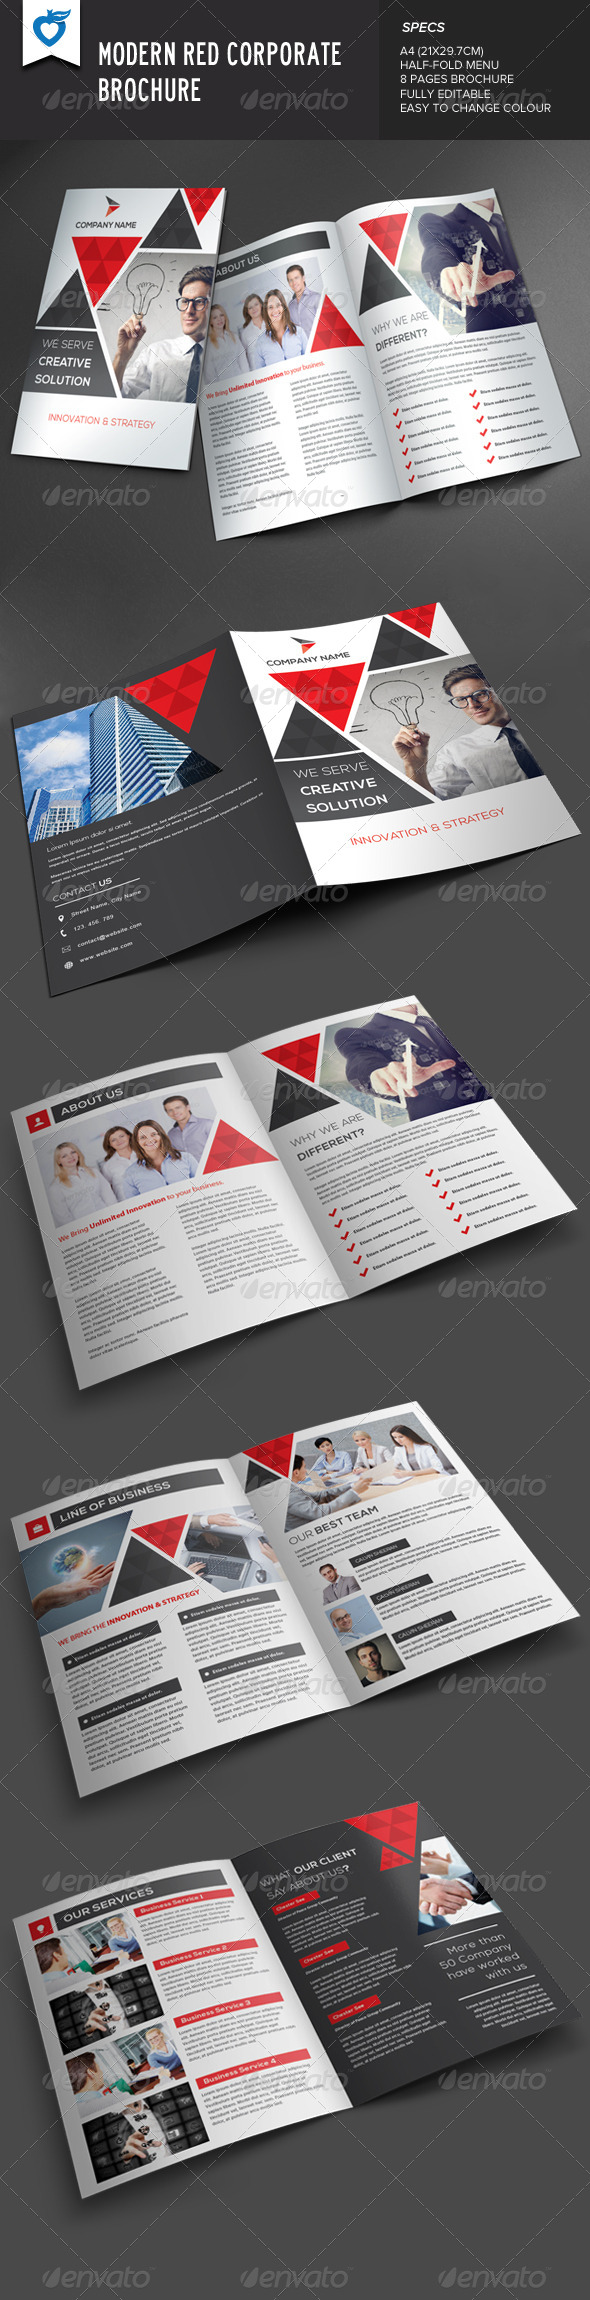 GraphicRiver Modern Red Corporate Brochure 8354273